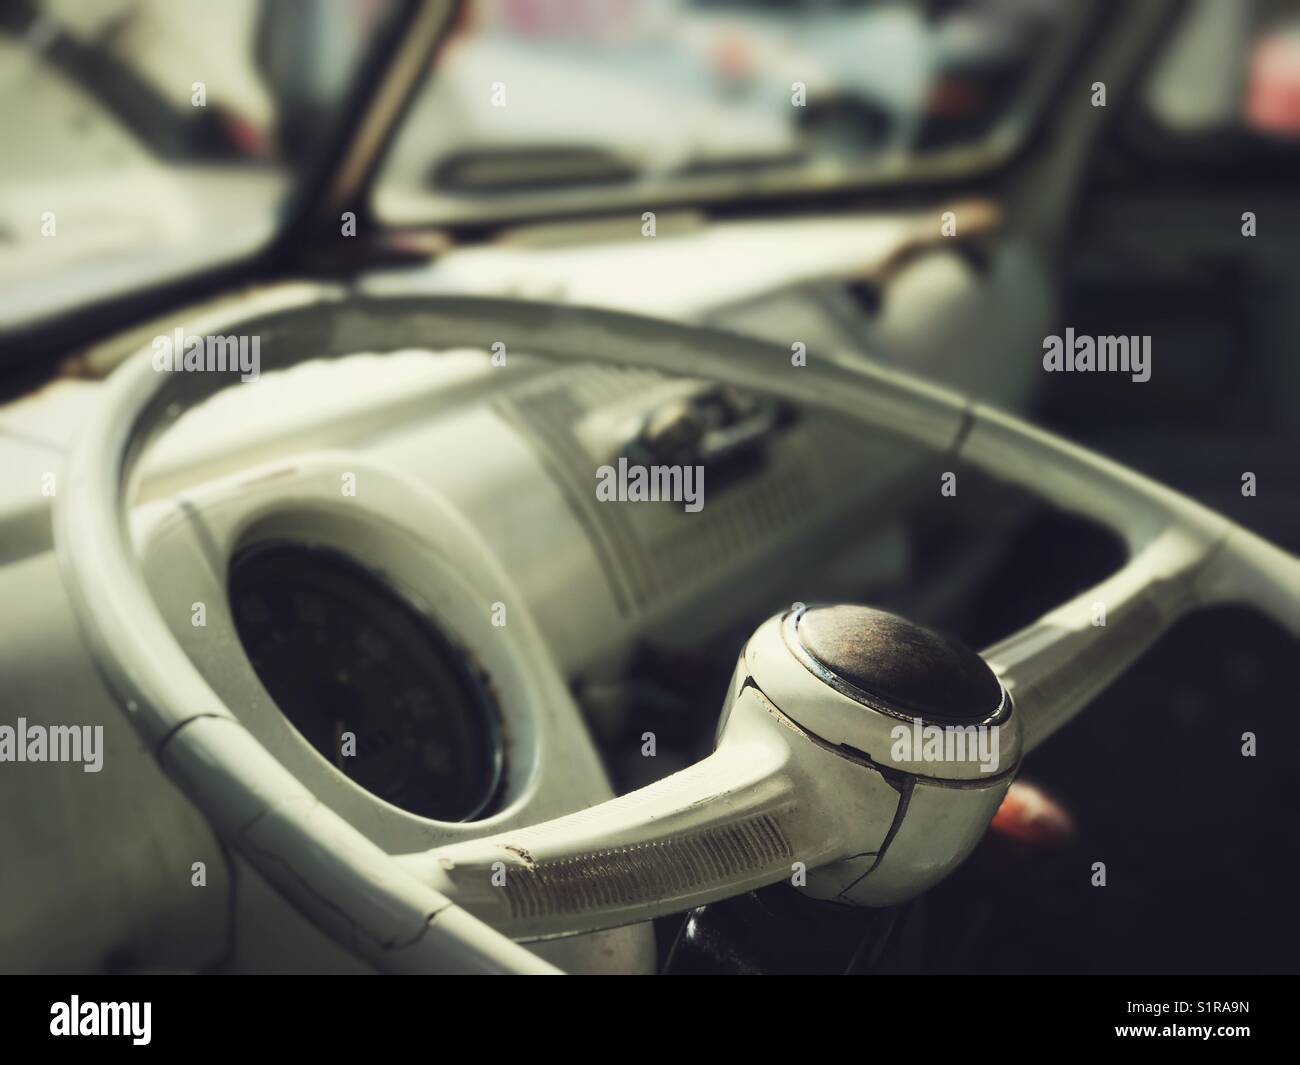 Steering wheel and dashboard of vintage VW Bus - Stock Image